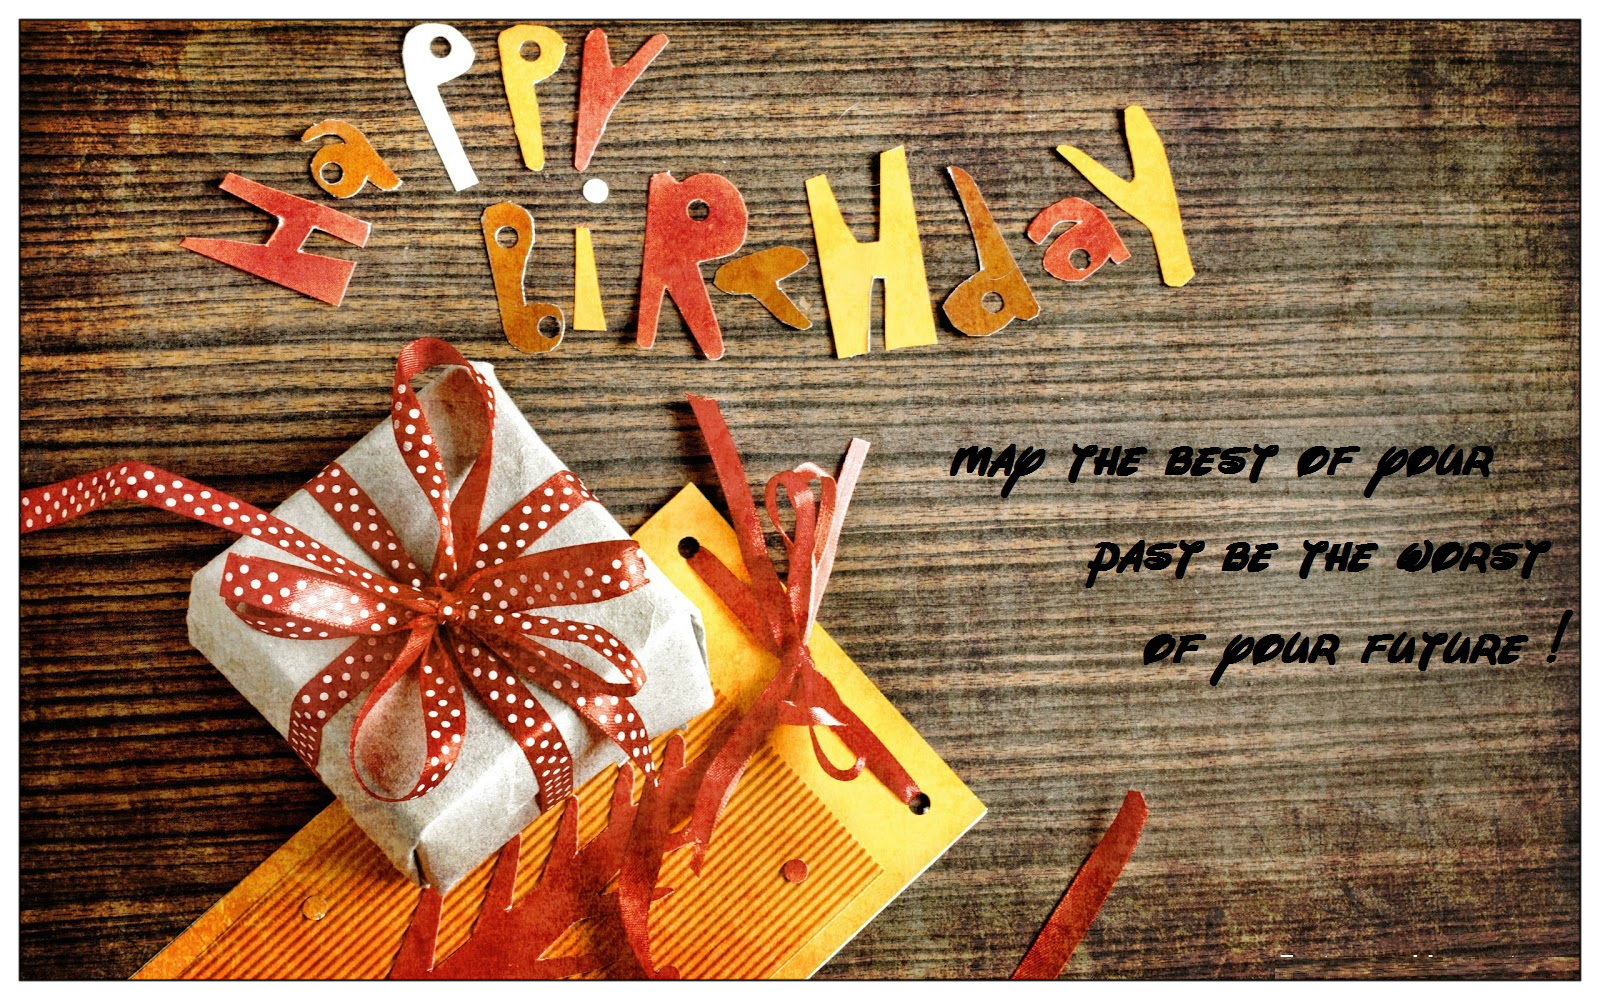 happy birthday wishes hd images free download ; 8cEbX98xi